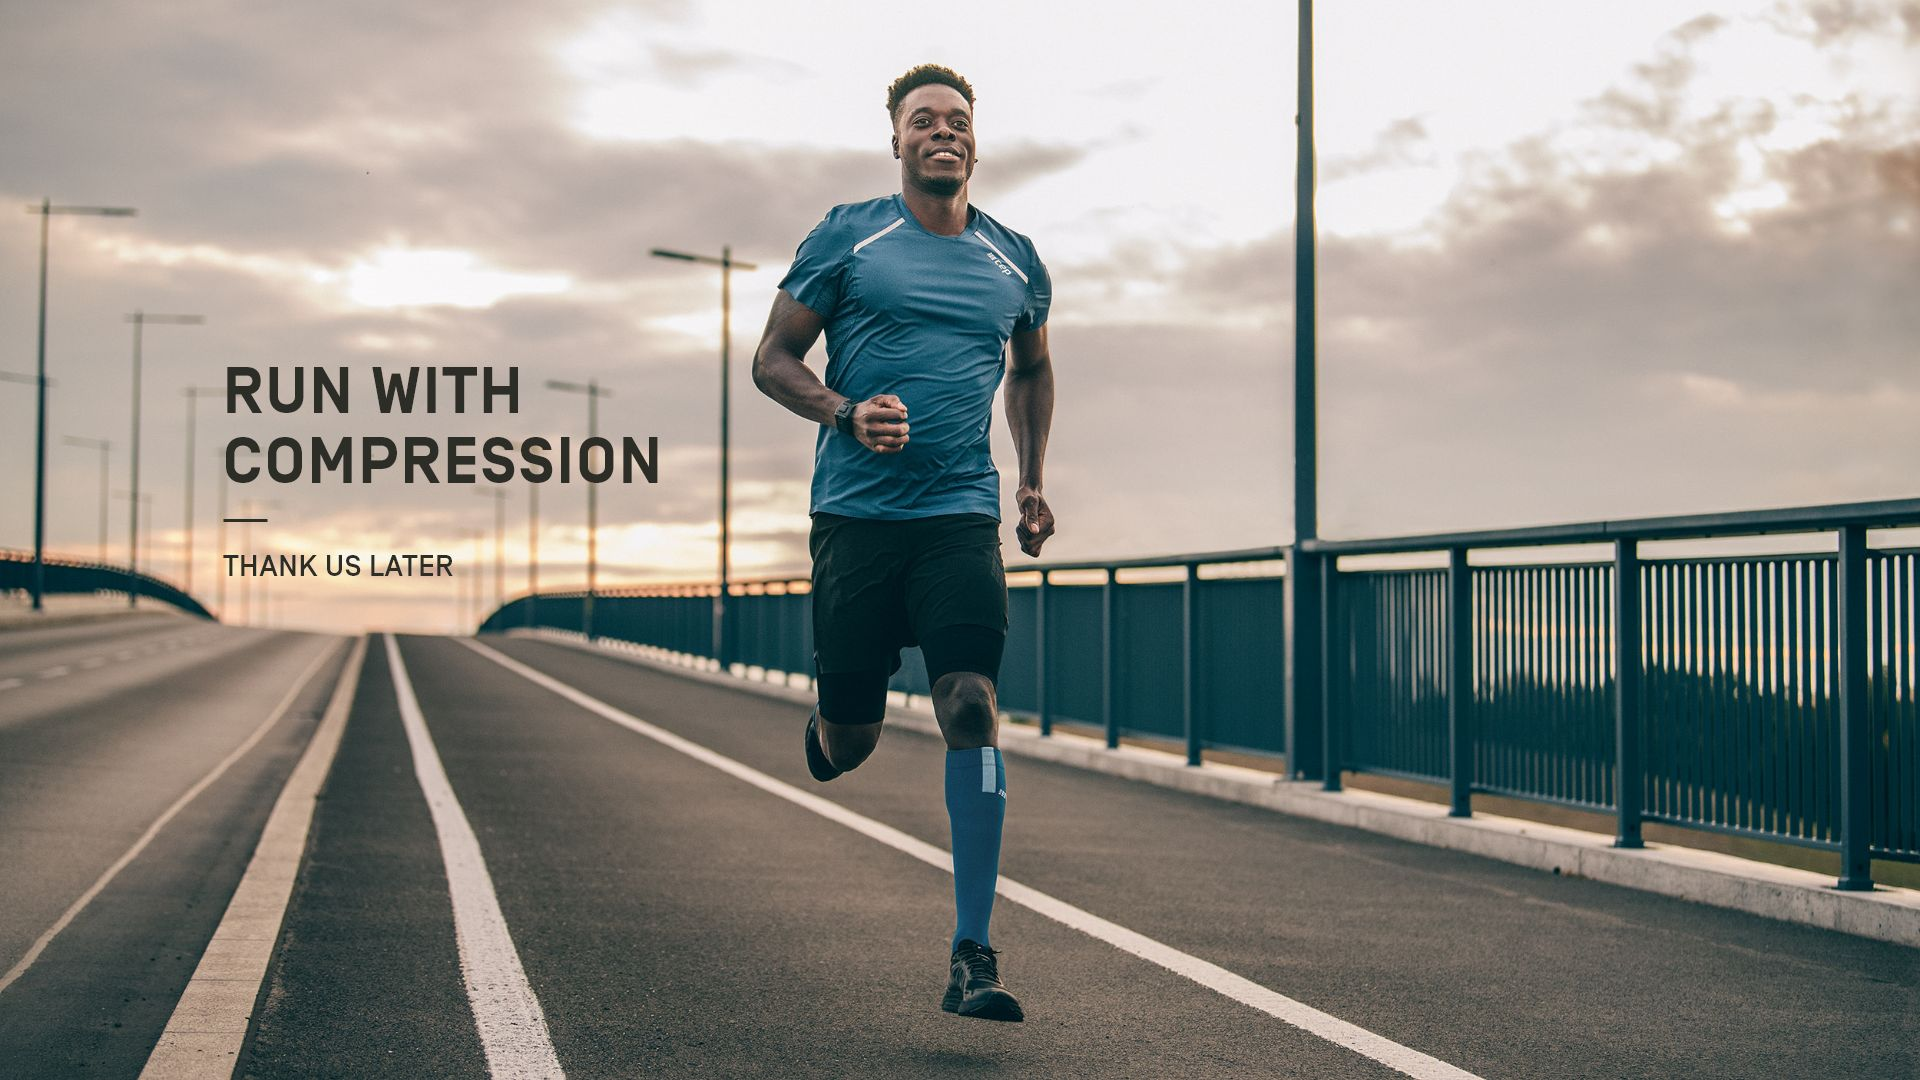 run with compression